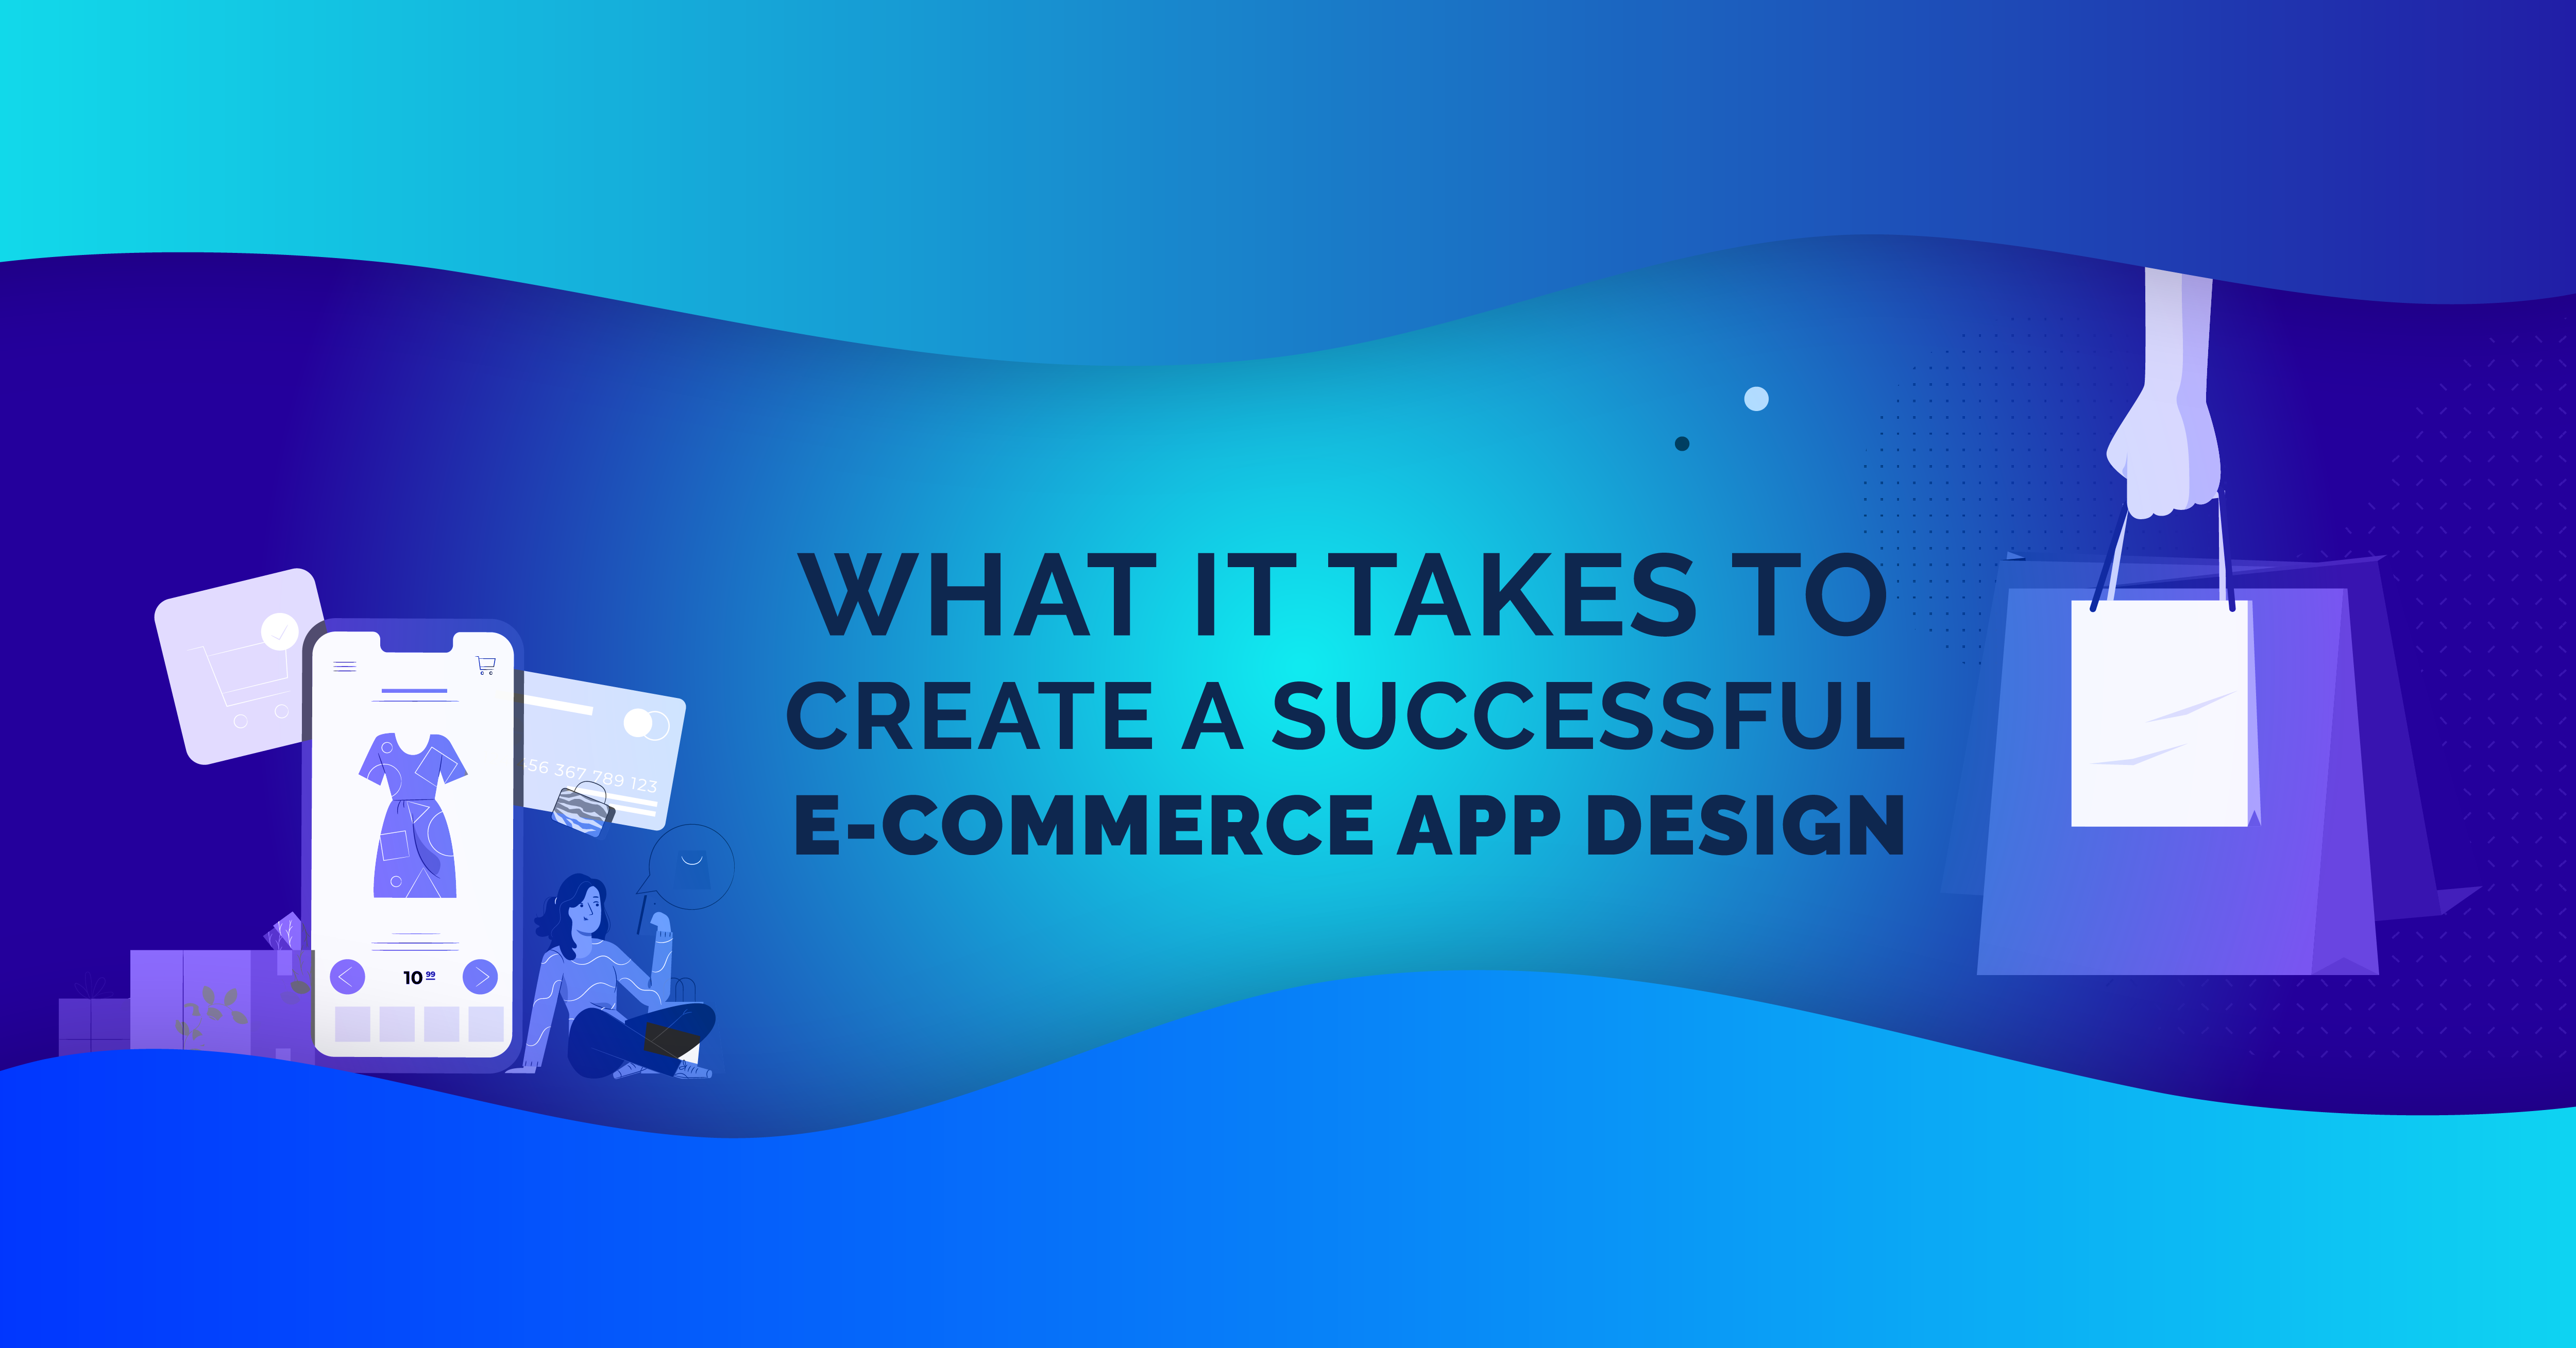 What it Takes to Create a Successful E-commerce App Design